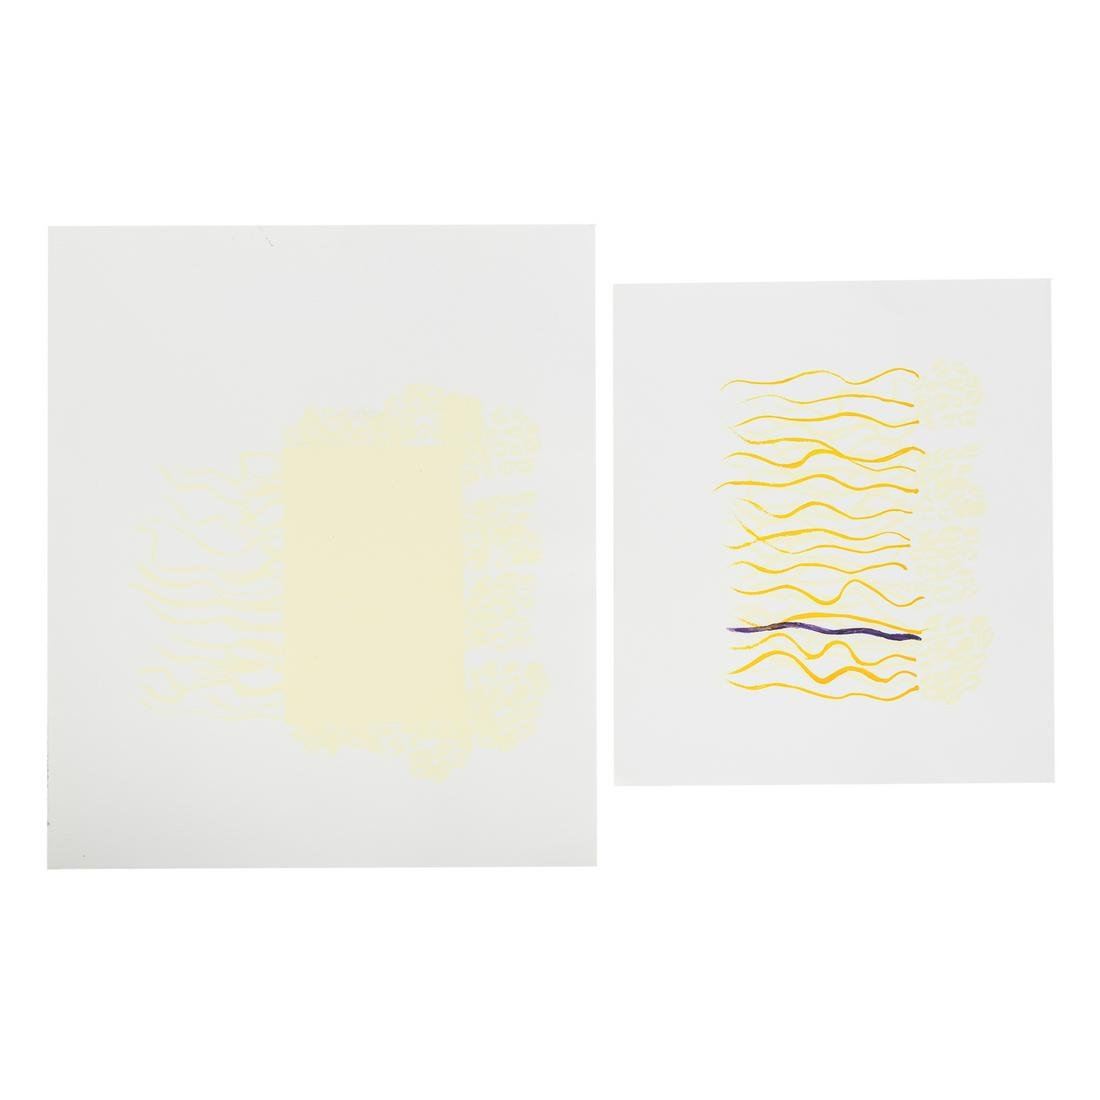 EJ Montgomery. Two Abstract Works on Paper